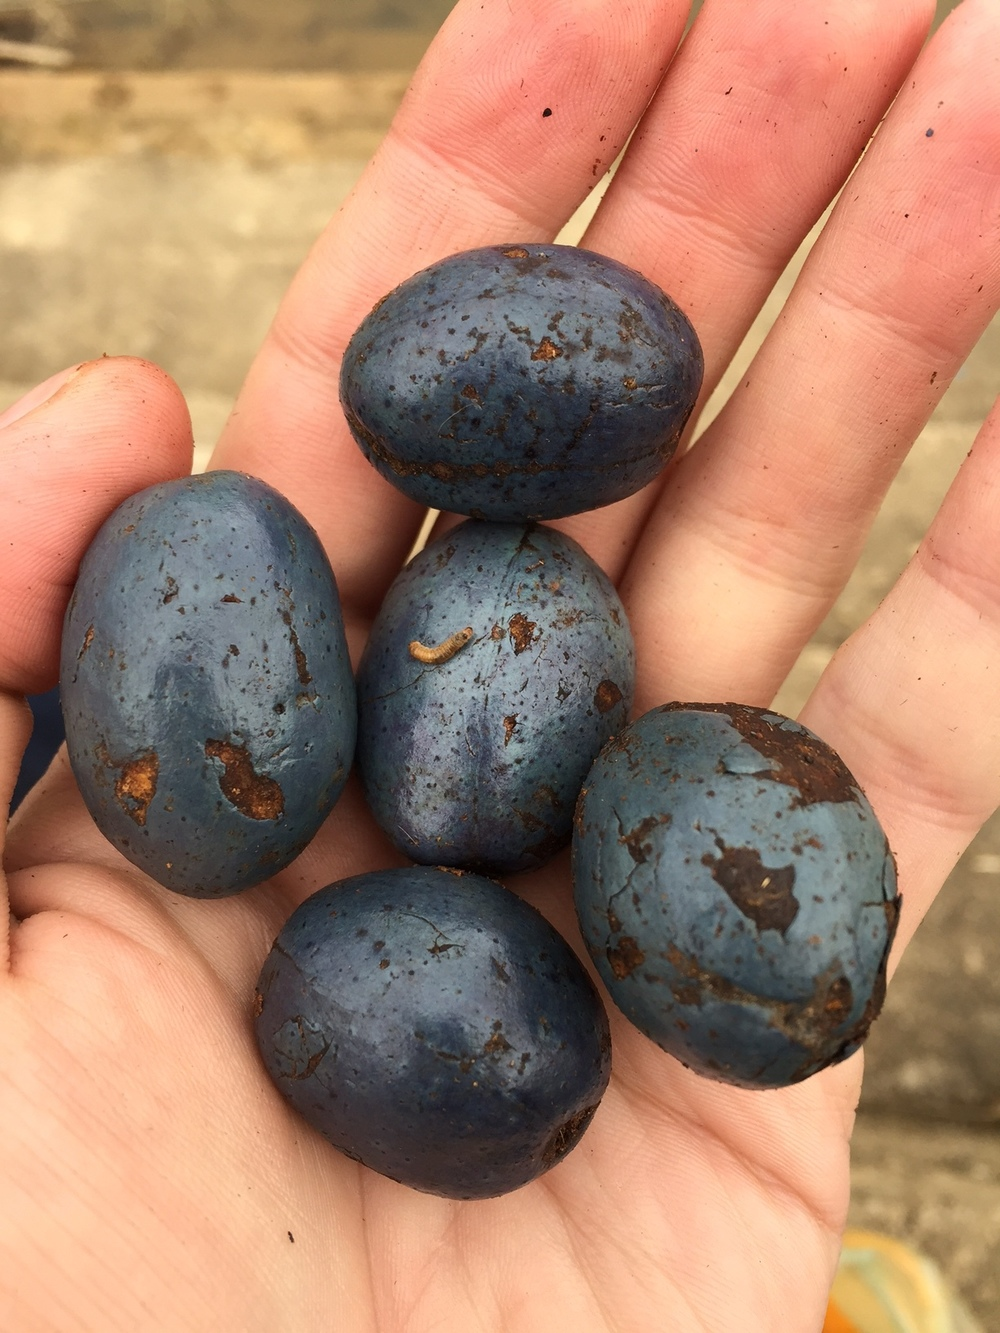 Unknown - bought these at a local market. You have to boil them first. They taste like an olive with a woody finish.